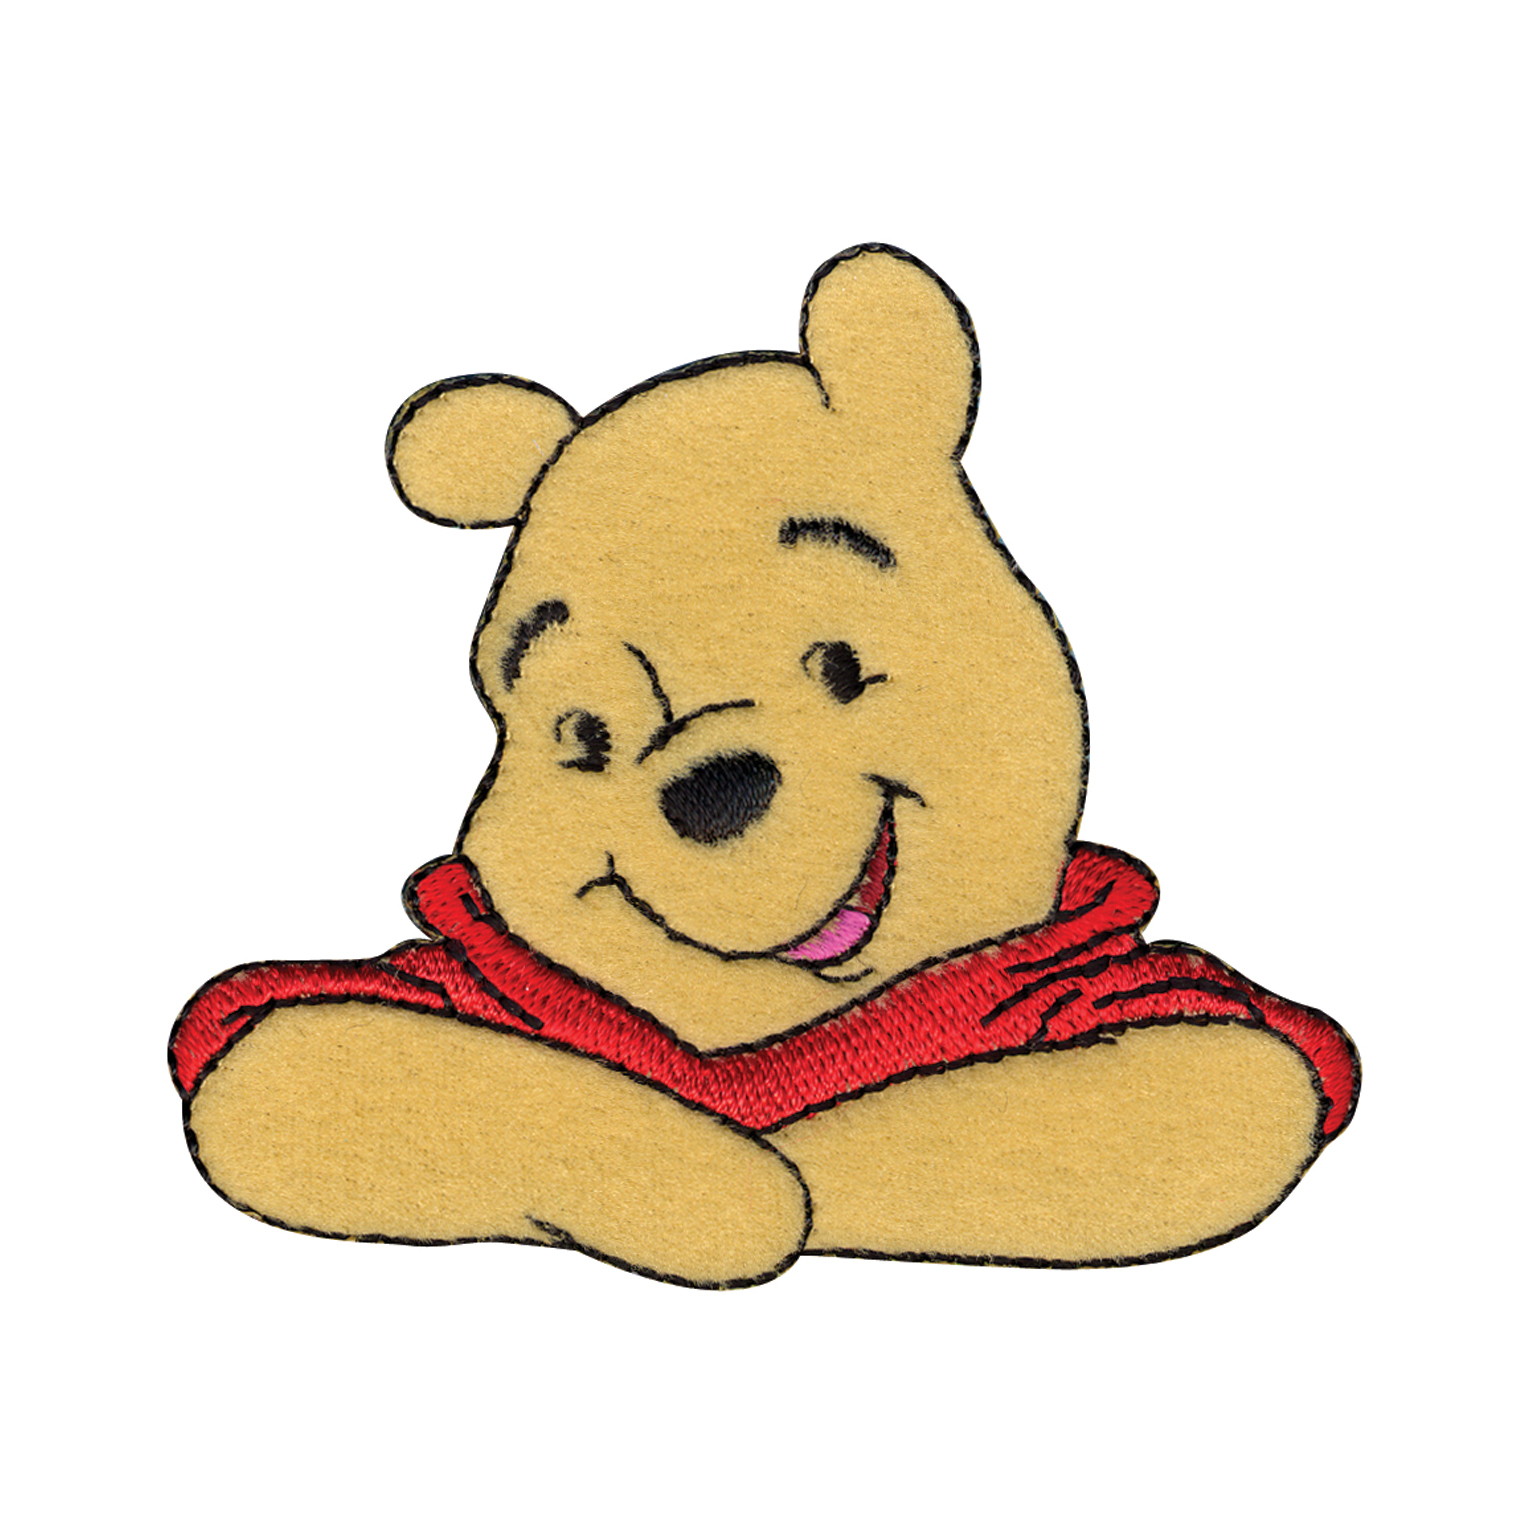 Disney Winnie The Pooh Iron On Applique Winnie The Pooh by Notions Marketing in USA